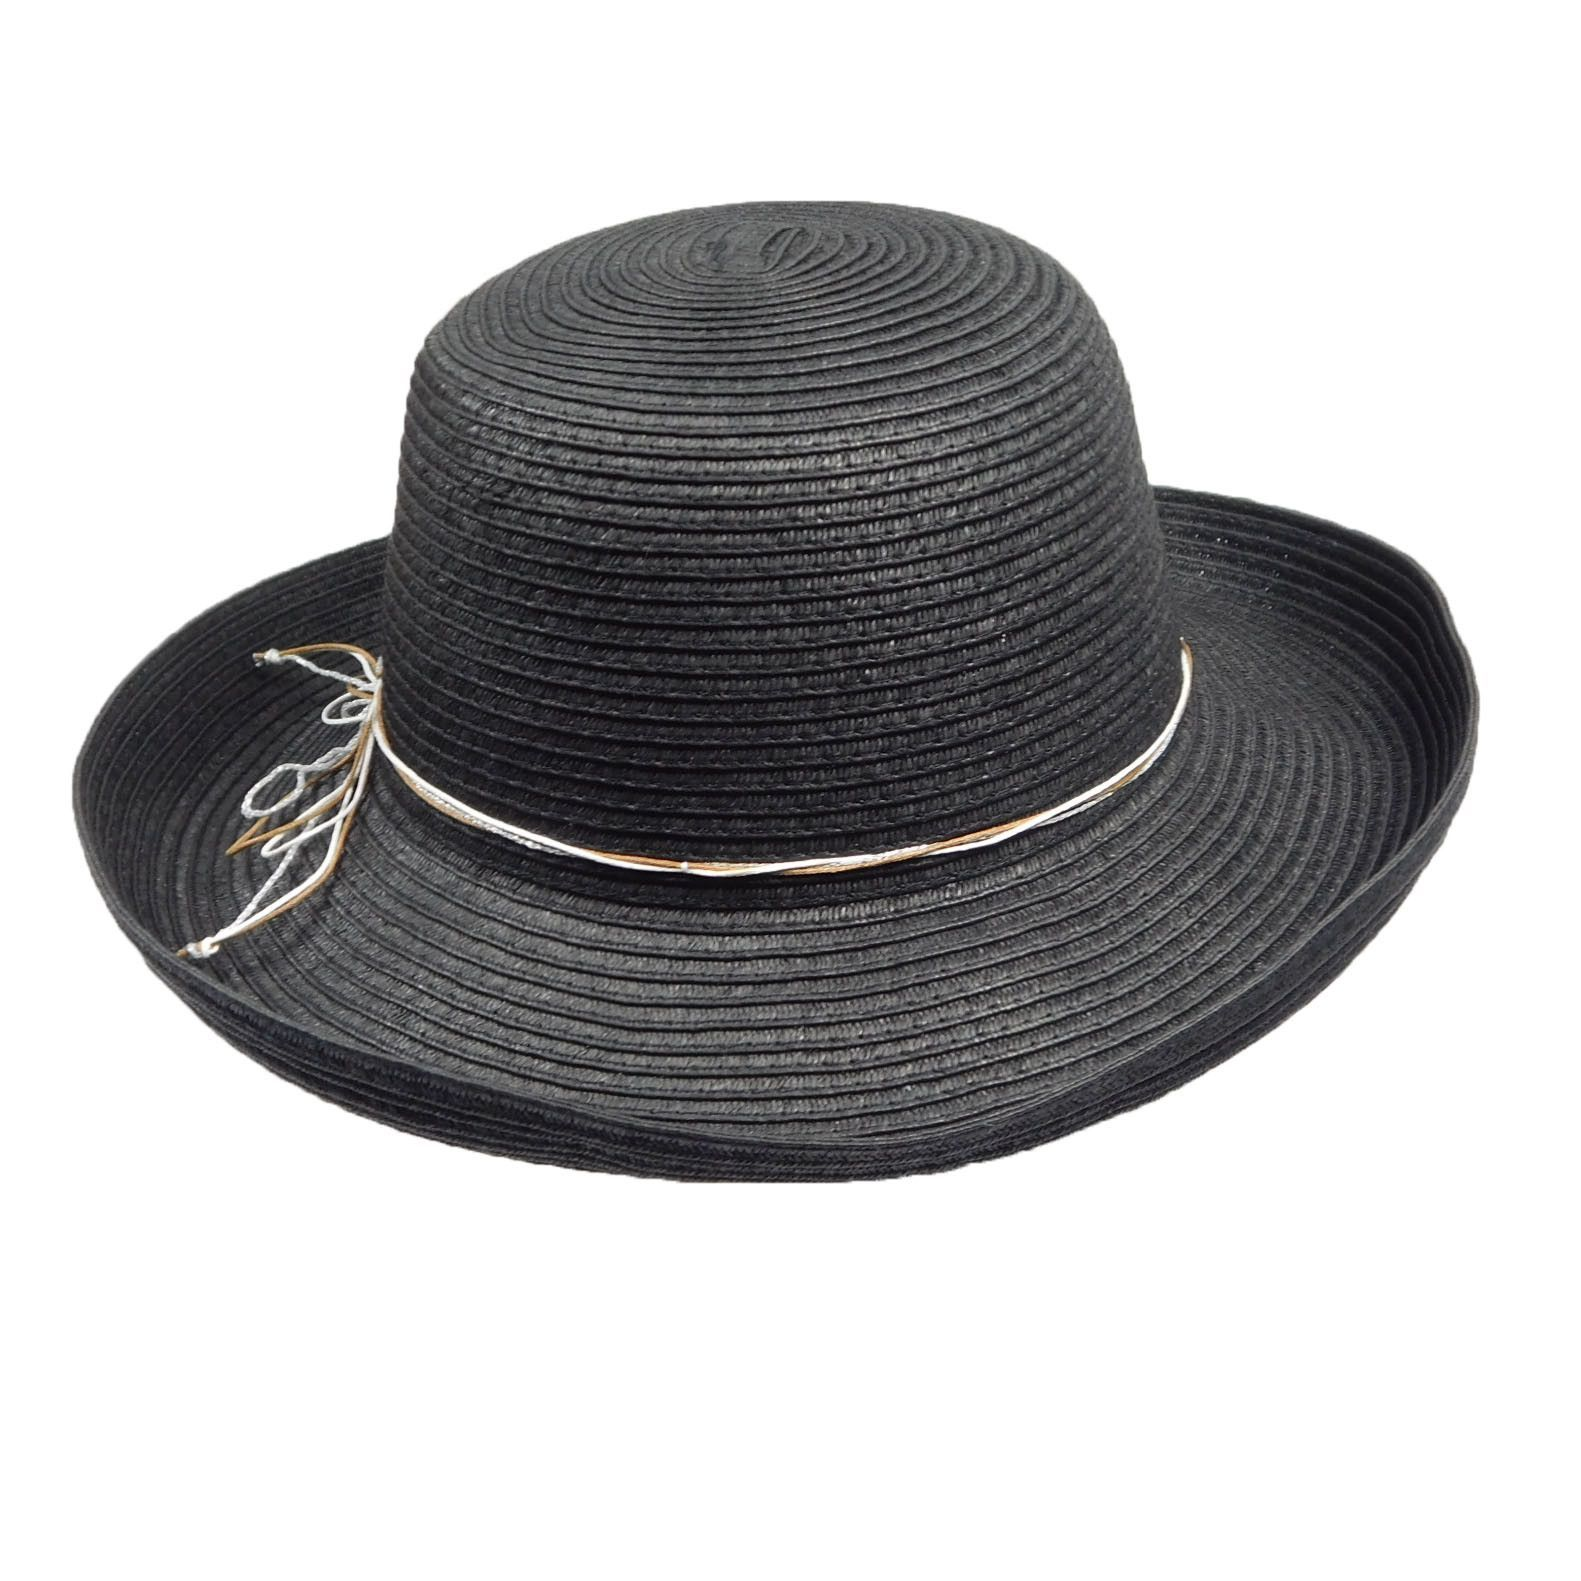 Scala Pronto Black Kettle Brim Hat